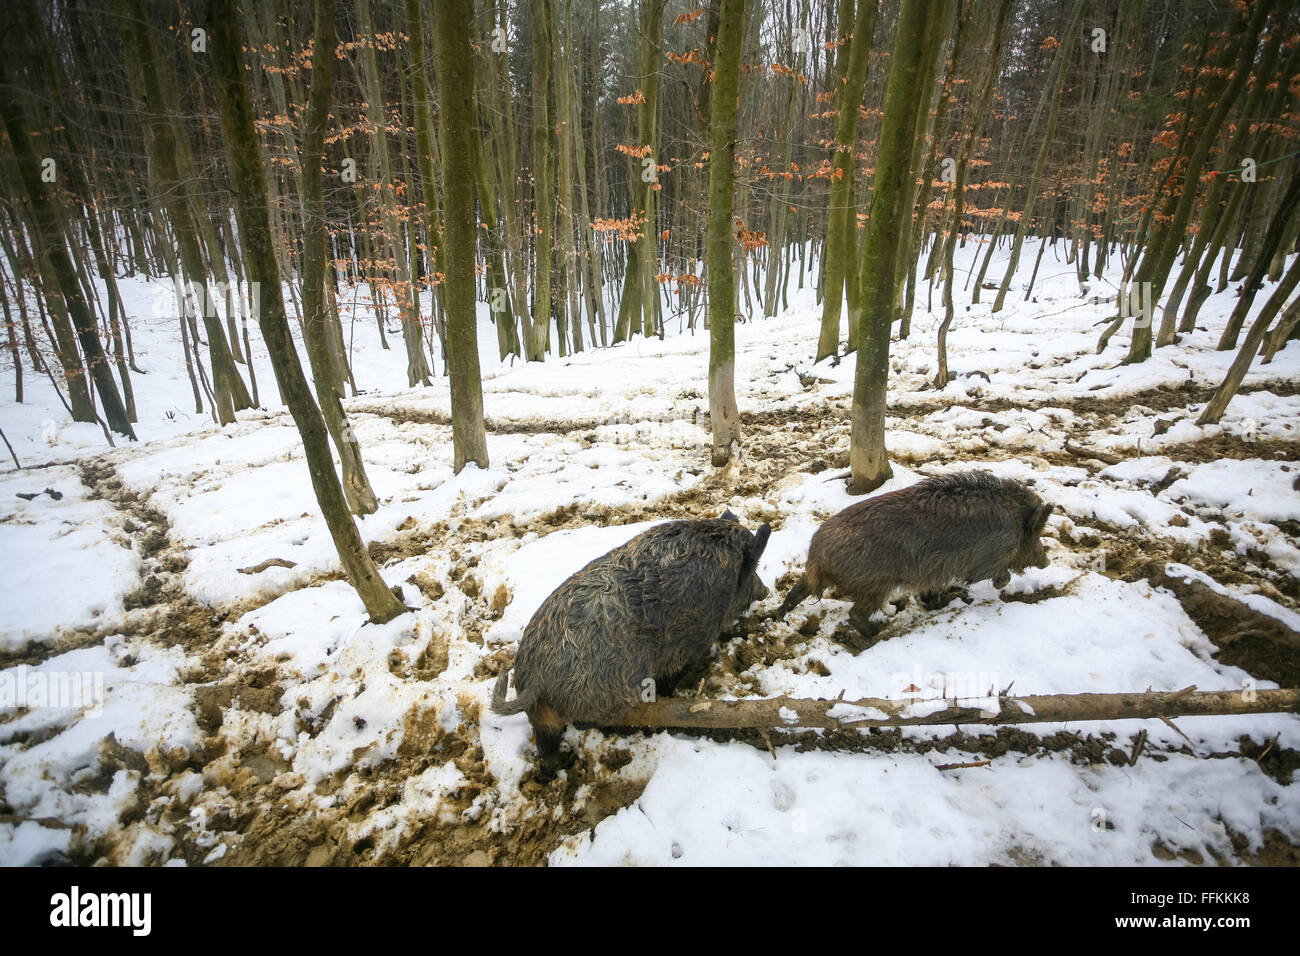 Two wild boars walking in the mud covered with snow in the forest. - Stock Image